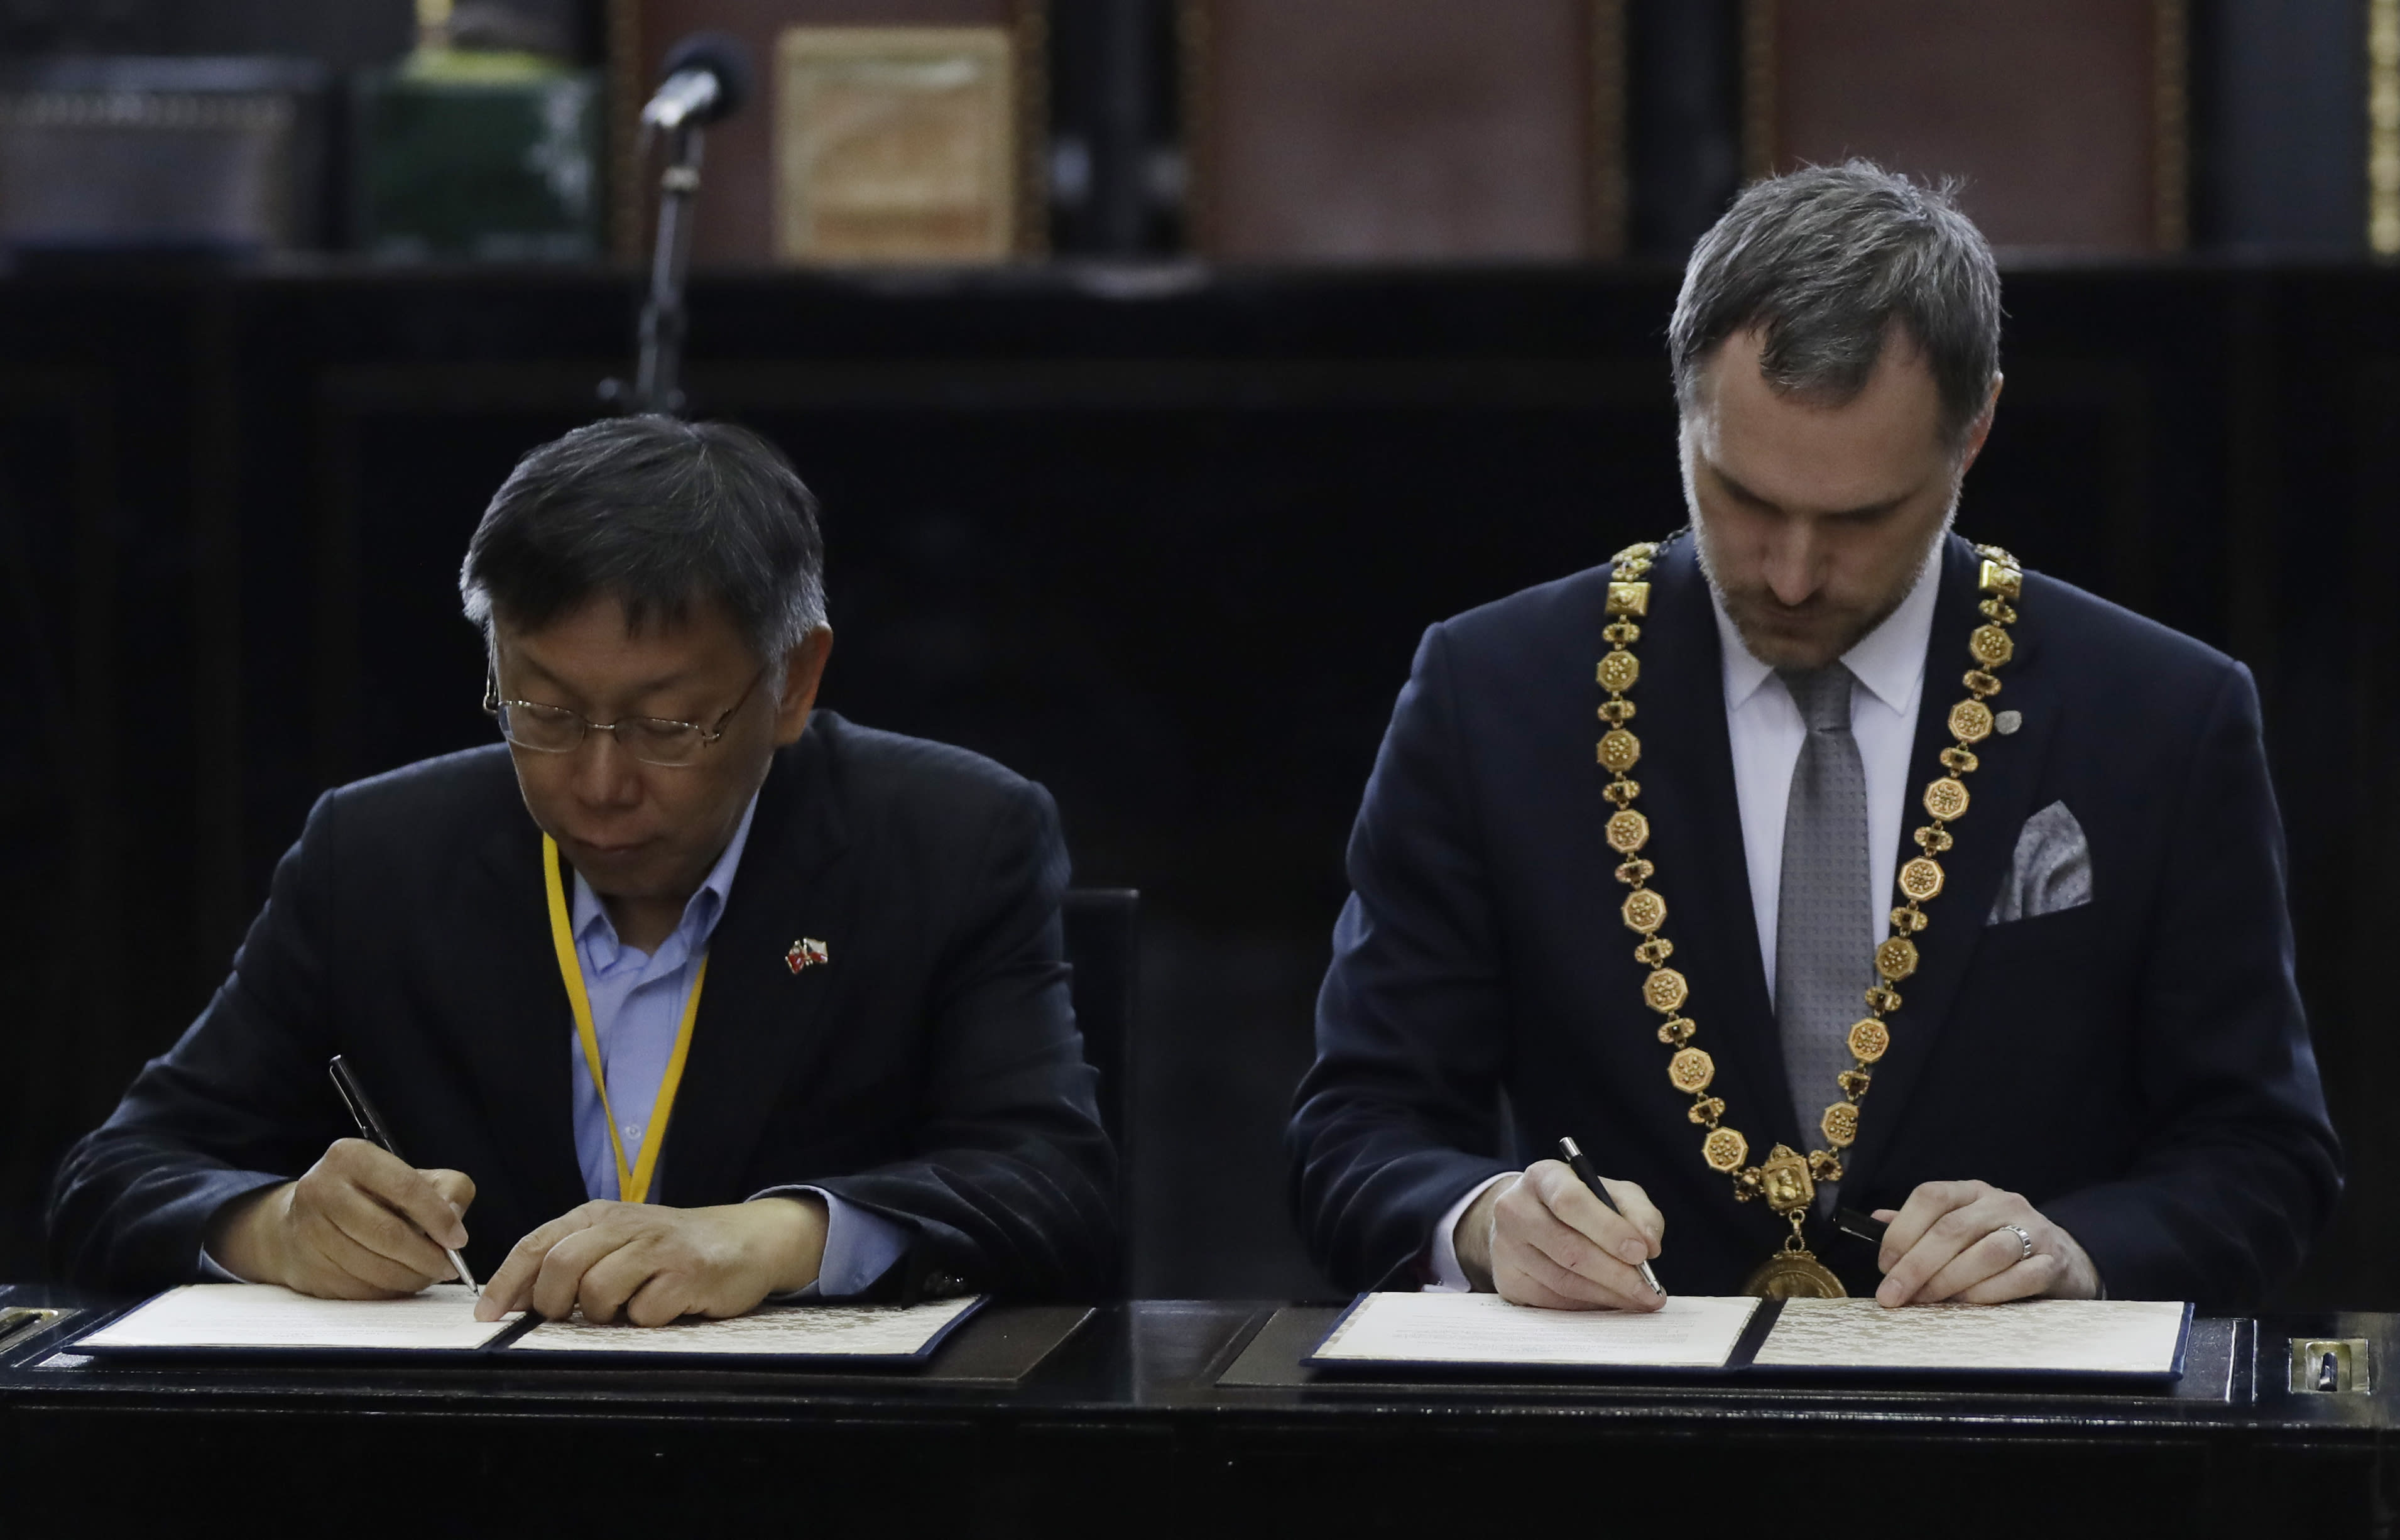 Mayor of Prague Zdenek Hrib, right, and Taipei city mayor Ko Wen-je sign a partnership agreement between the two cities at at the Old Town City Hall in Prague, Czech Republic, Monday, Jan. 13, 2020. The signing comes three months after Prague revoked a similar sister-city agreement with Beijing, an action that angered China. (AP Photo/Petr David Josek)